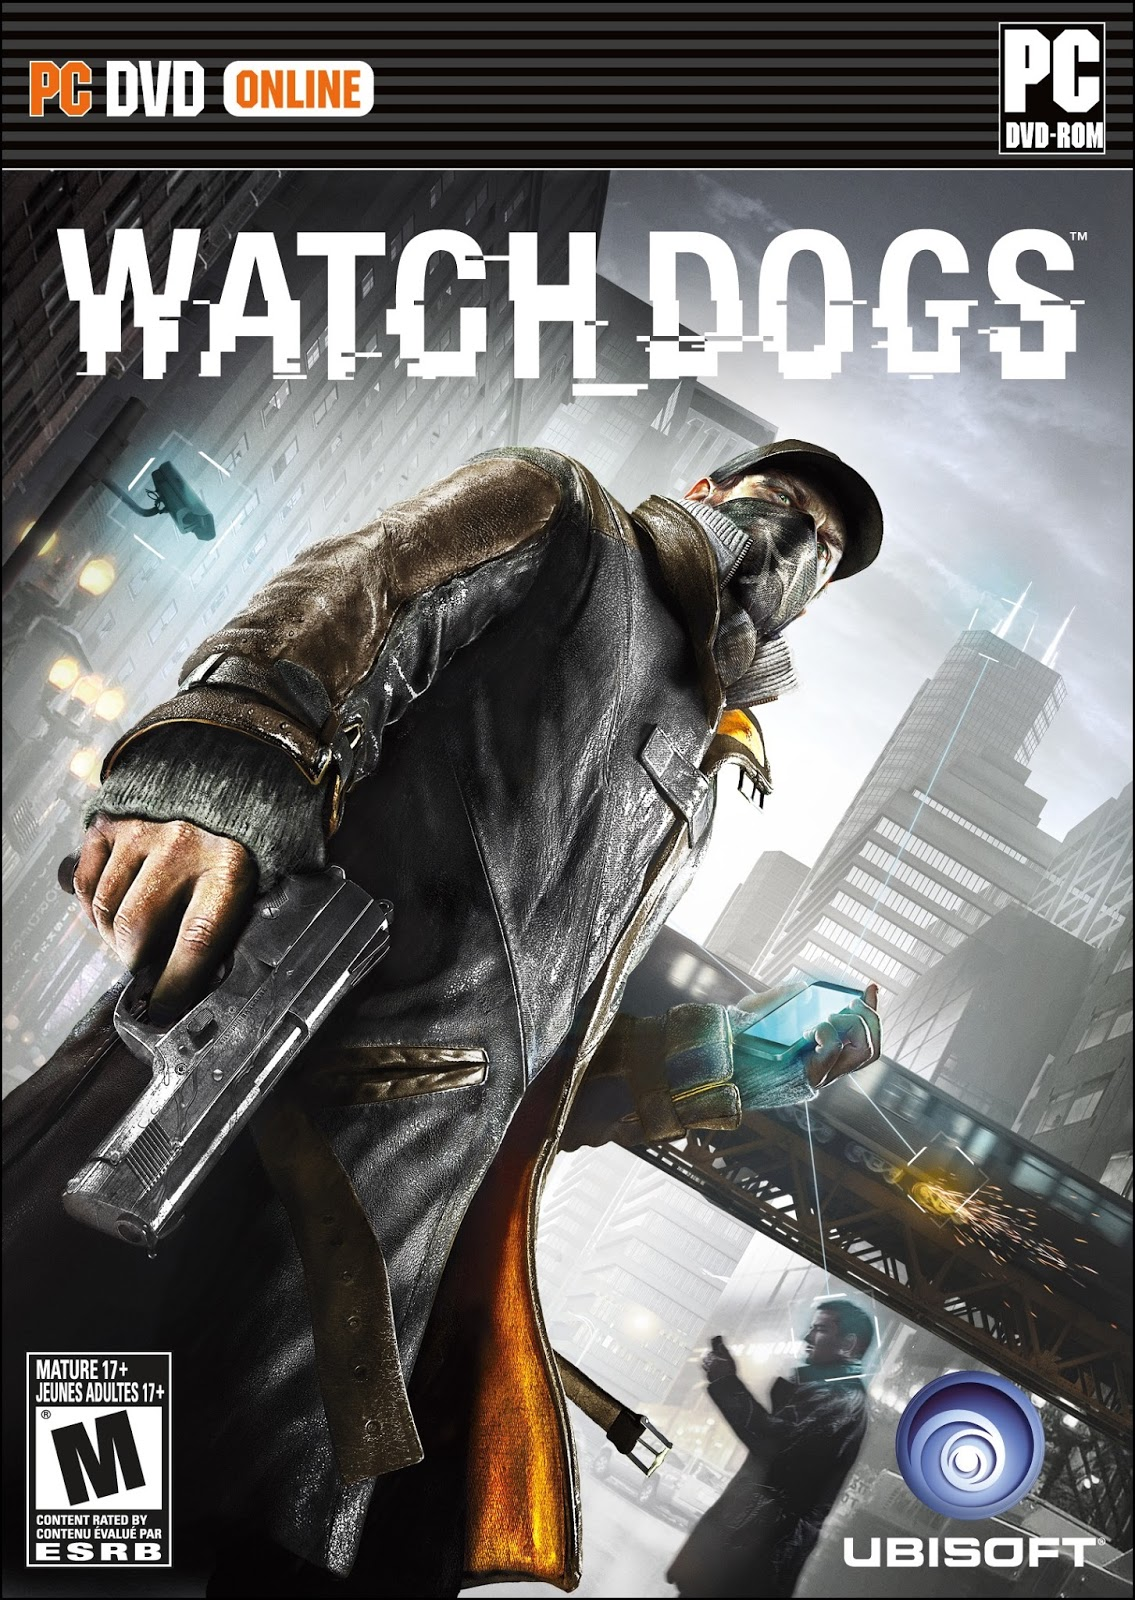 Download Watch Dogs PC GAME ~ GETPCGAMESET